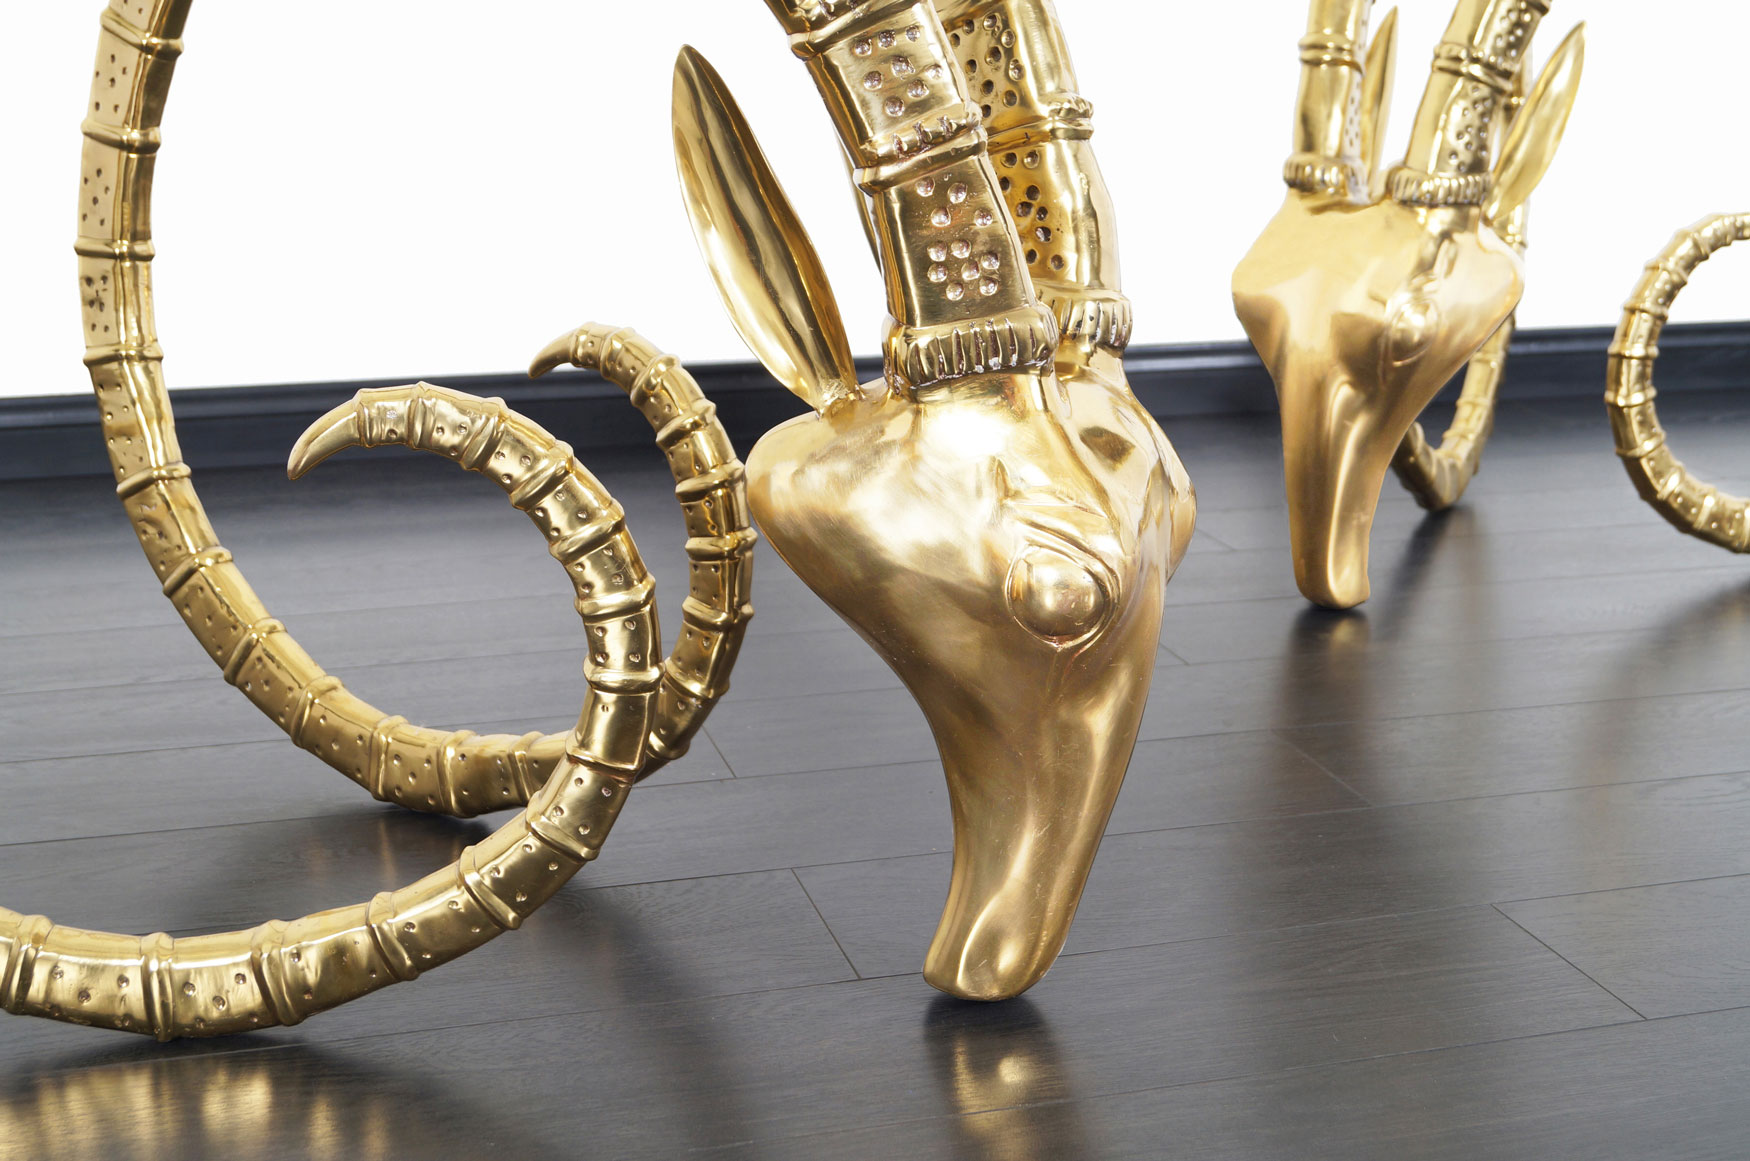 Exceptional Brass Ibex Rams Head Sculptures in the style of Alain Chervet